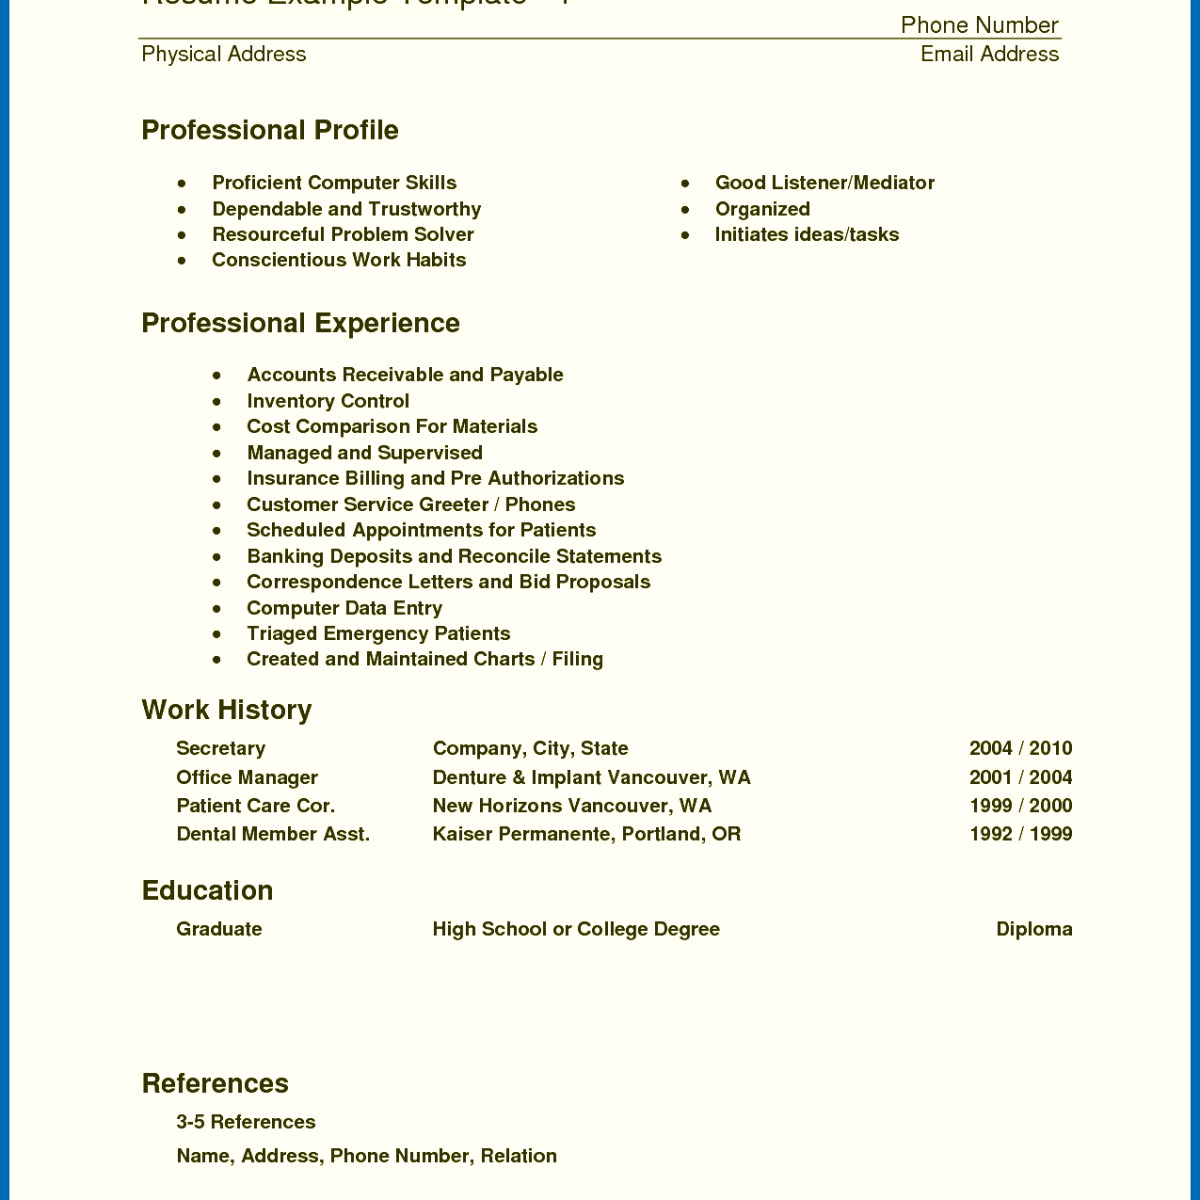 Medical assistant Resume Examples - Resume Medical assistant Examples Awesome Resume Skills for Customer